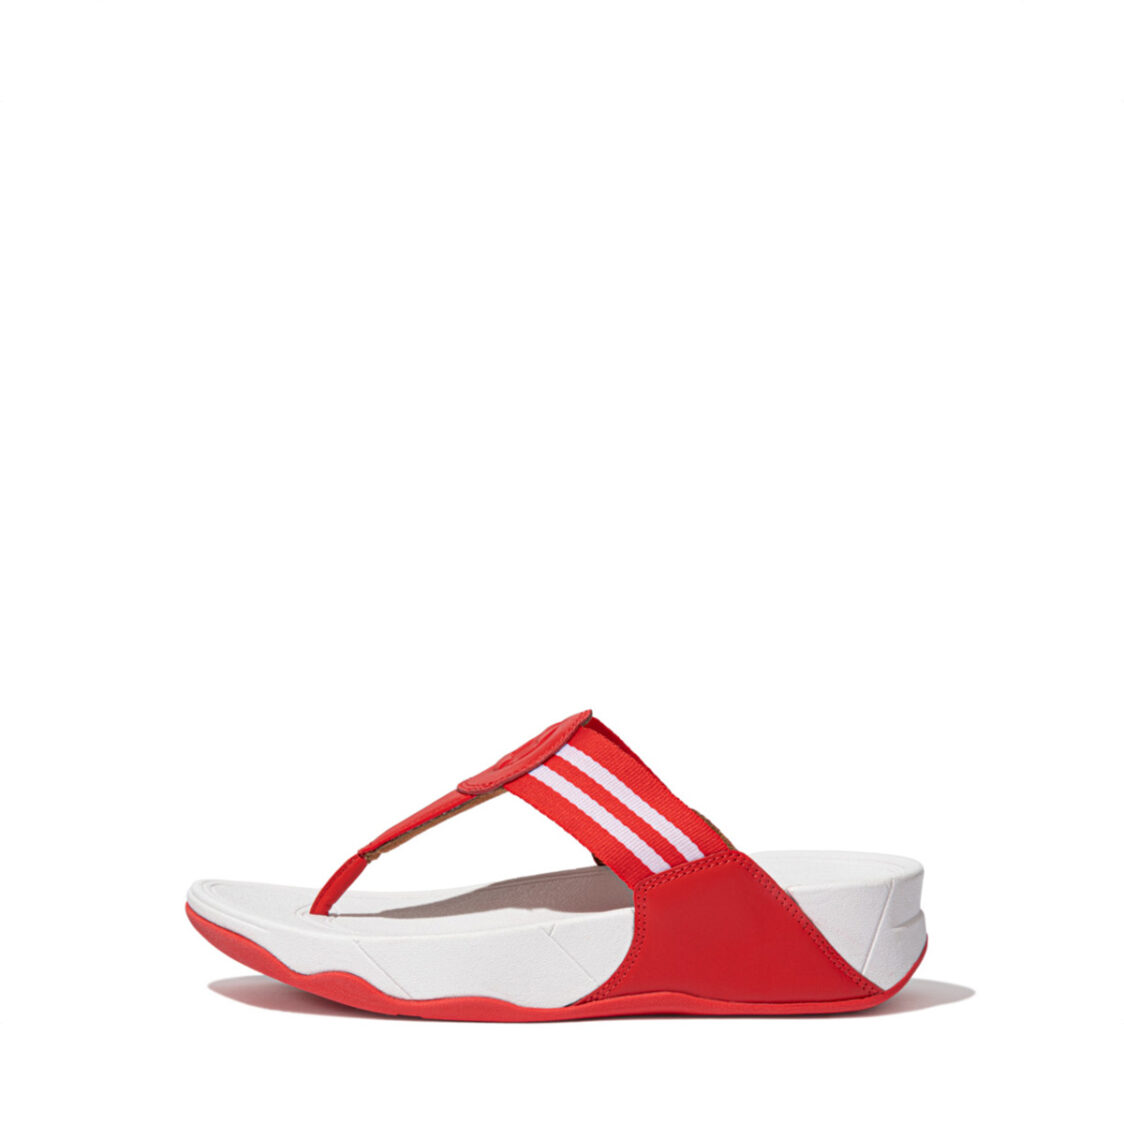 Fitflop Walkstar Toe-Post Sandals Red Dx4-002